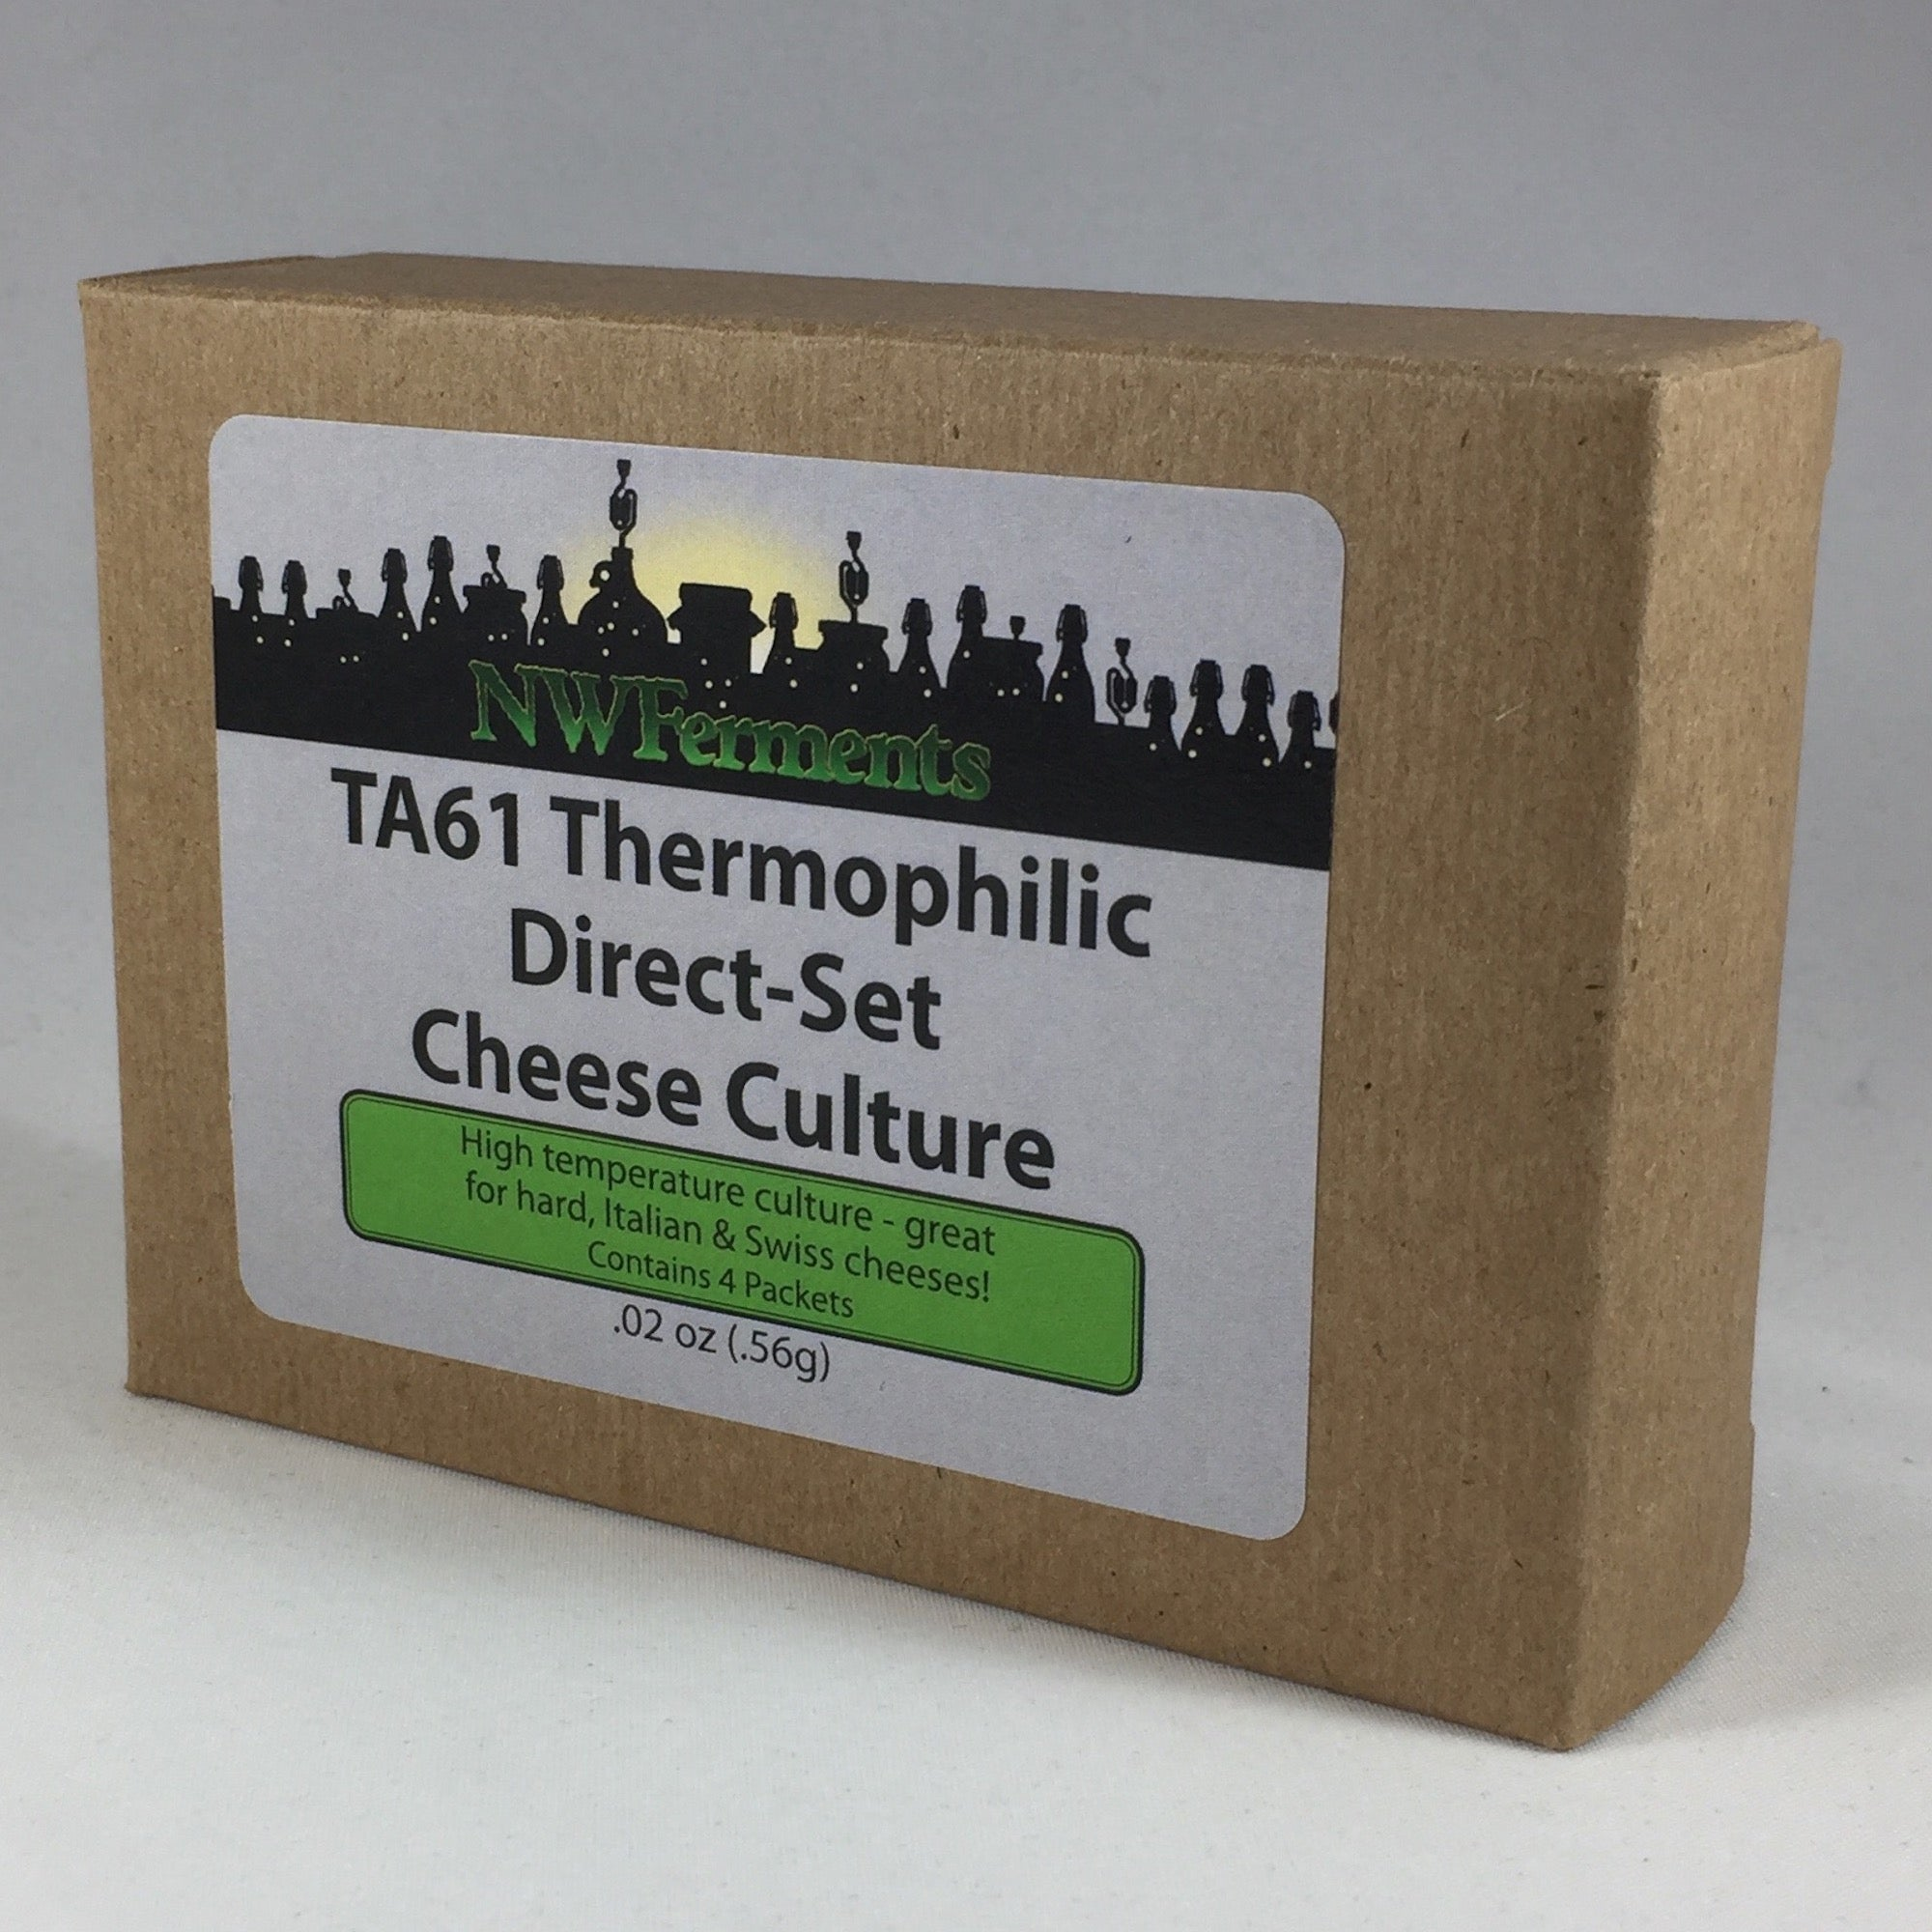 TA61 Thermophilic Cheese Culture